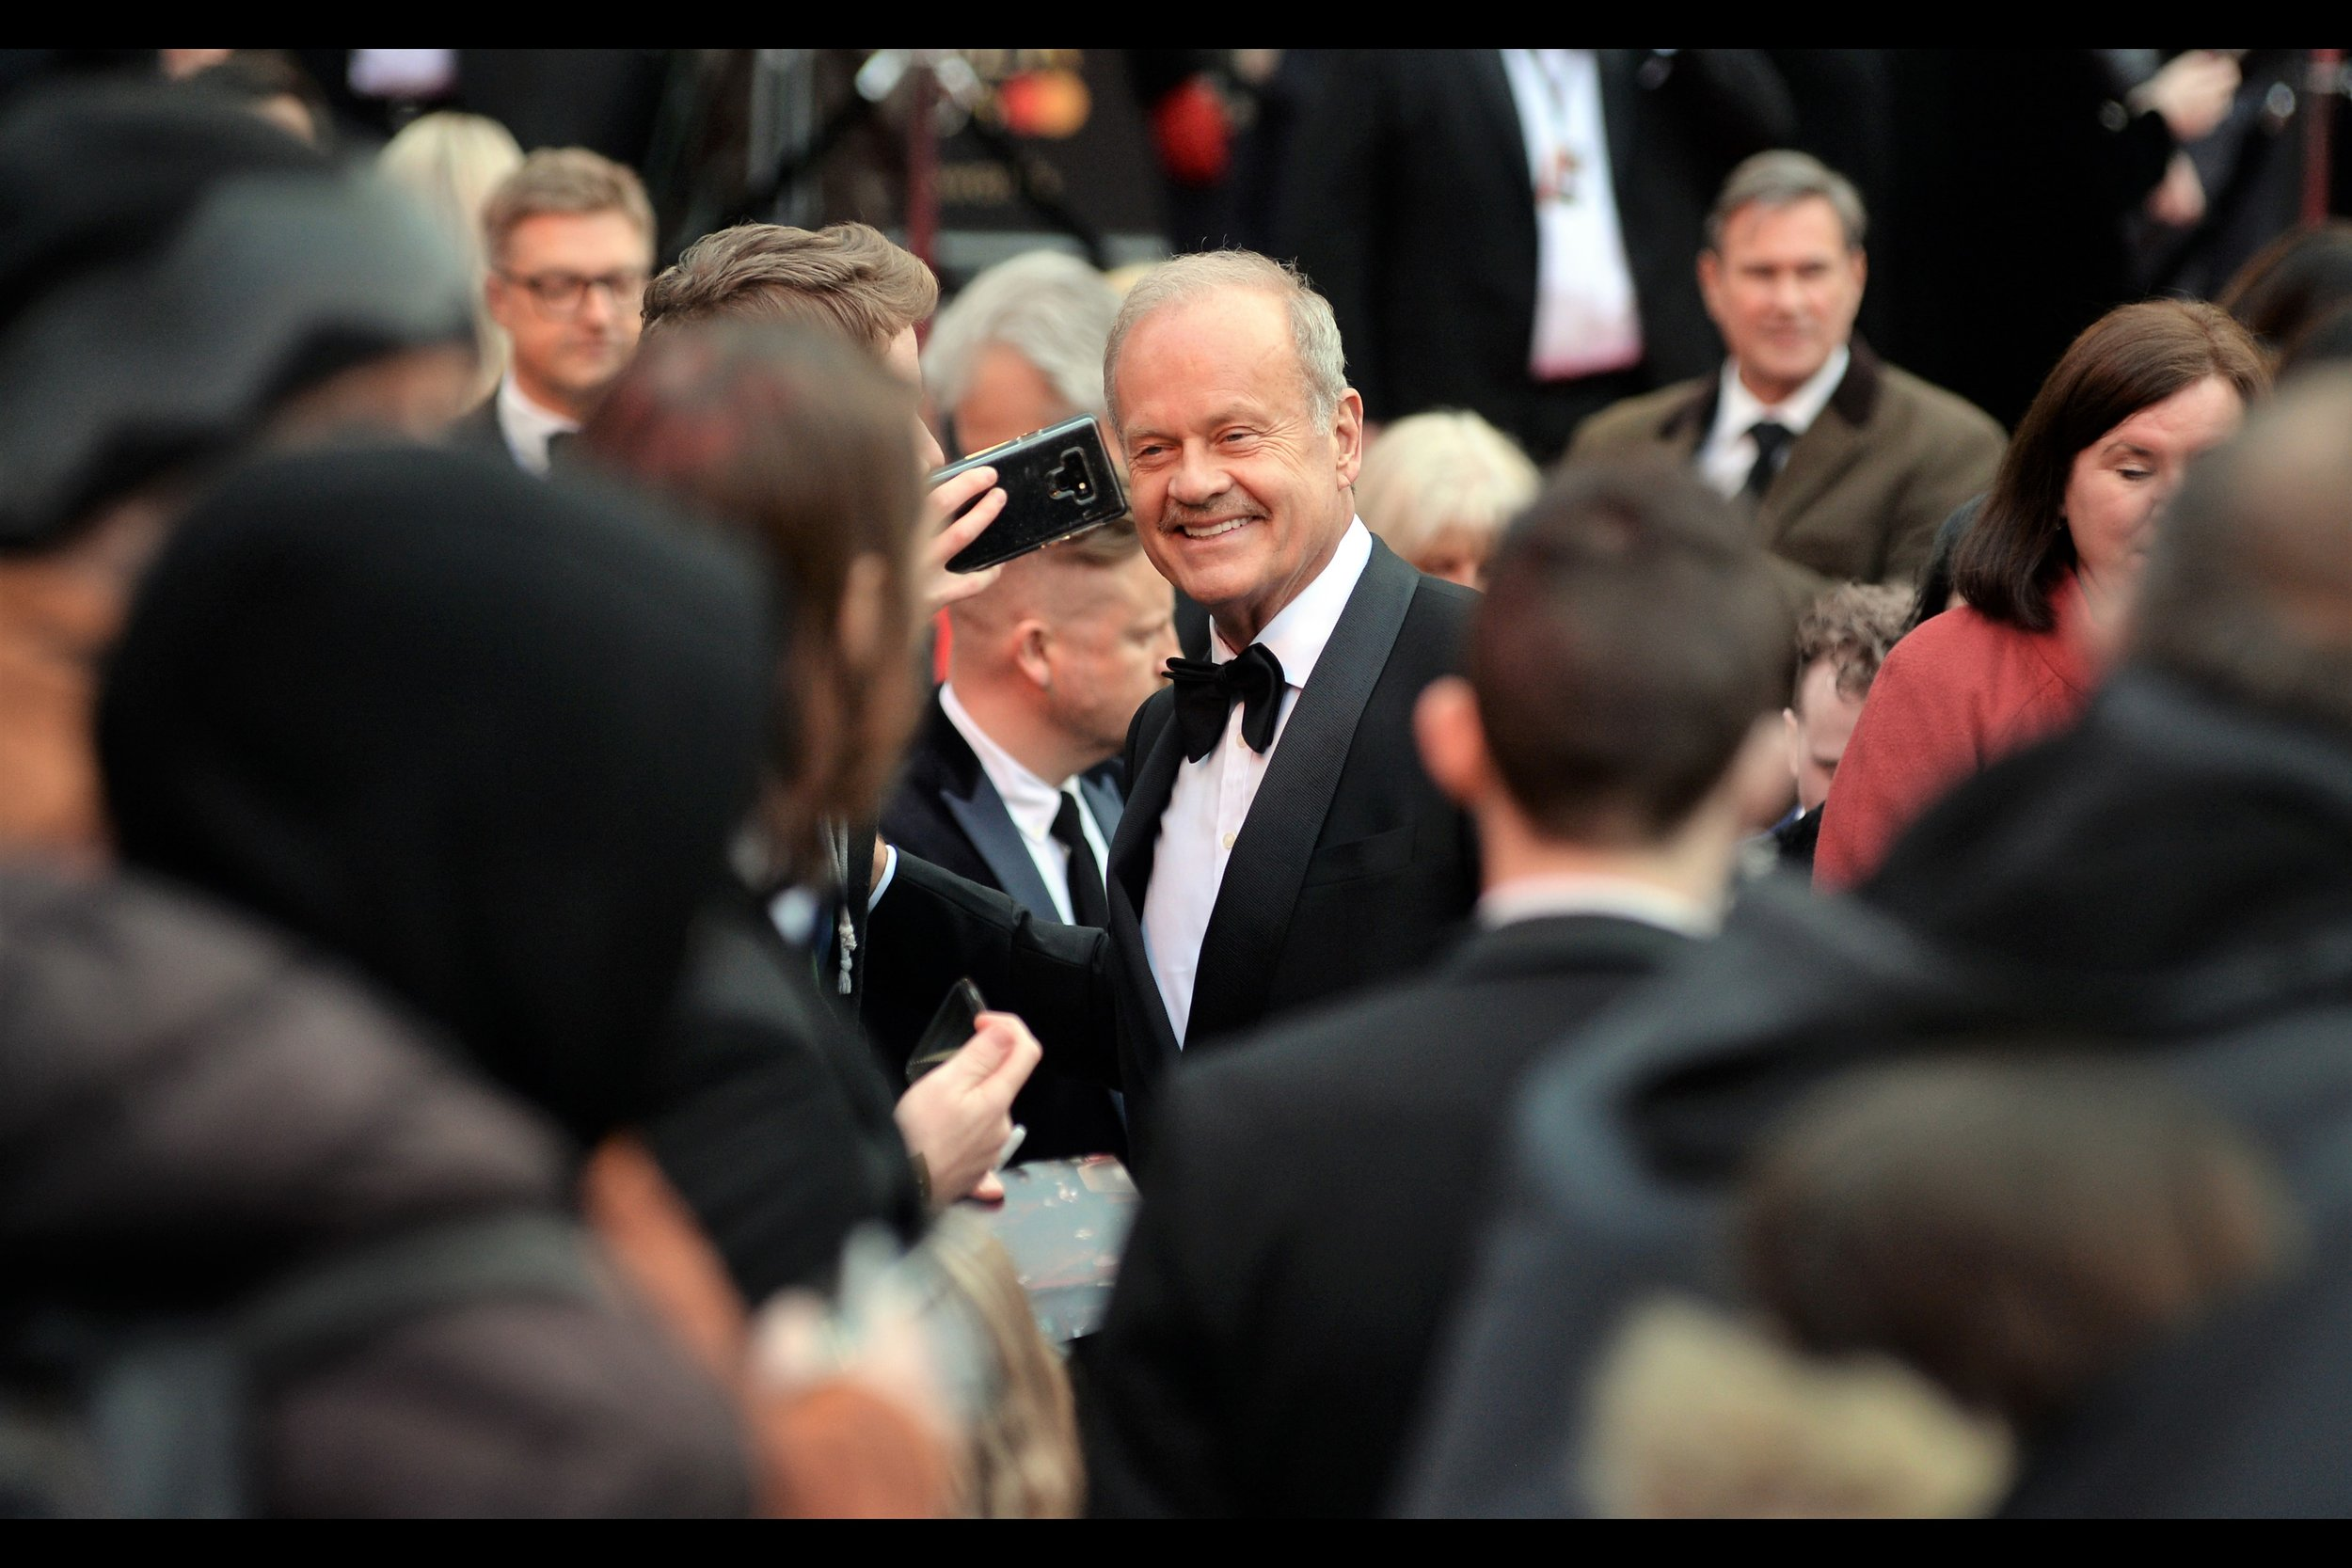 "It's Kelsey Grammer!! He played the character of Dr Frasier Crane for ten years and 203 episodes of ""Cheers"" from 1984-1993, before playing the same character in ""Frasier"" for another 263 episodes from 1993-2004. Of course, he was also Sideshow Bob in 21 episodes of The Simpsons across 27 years."